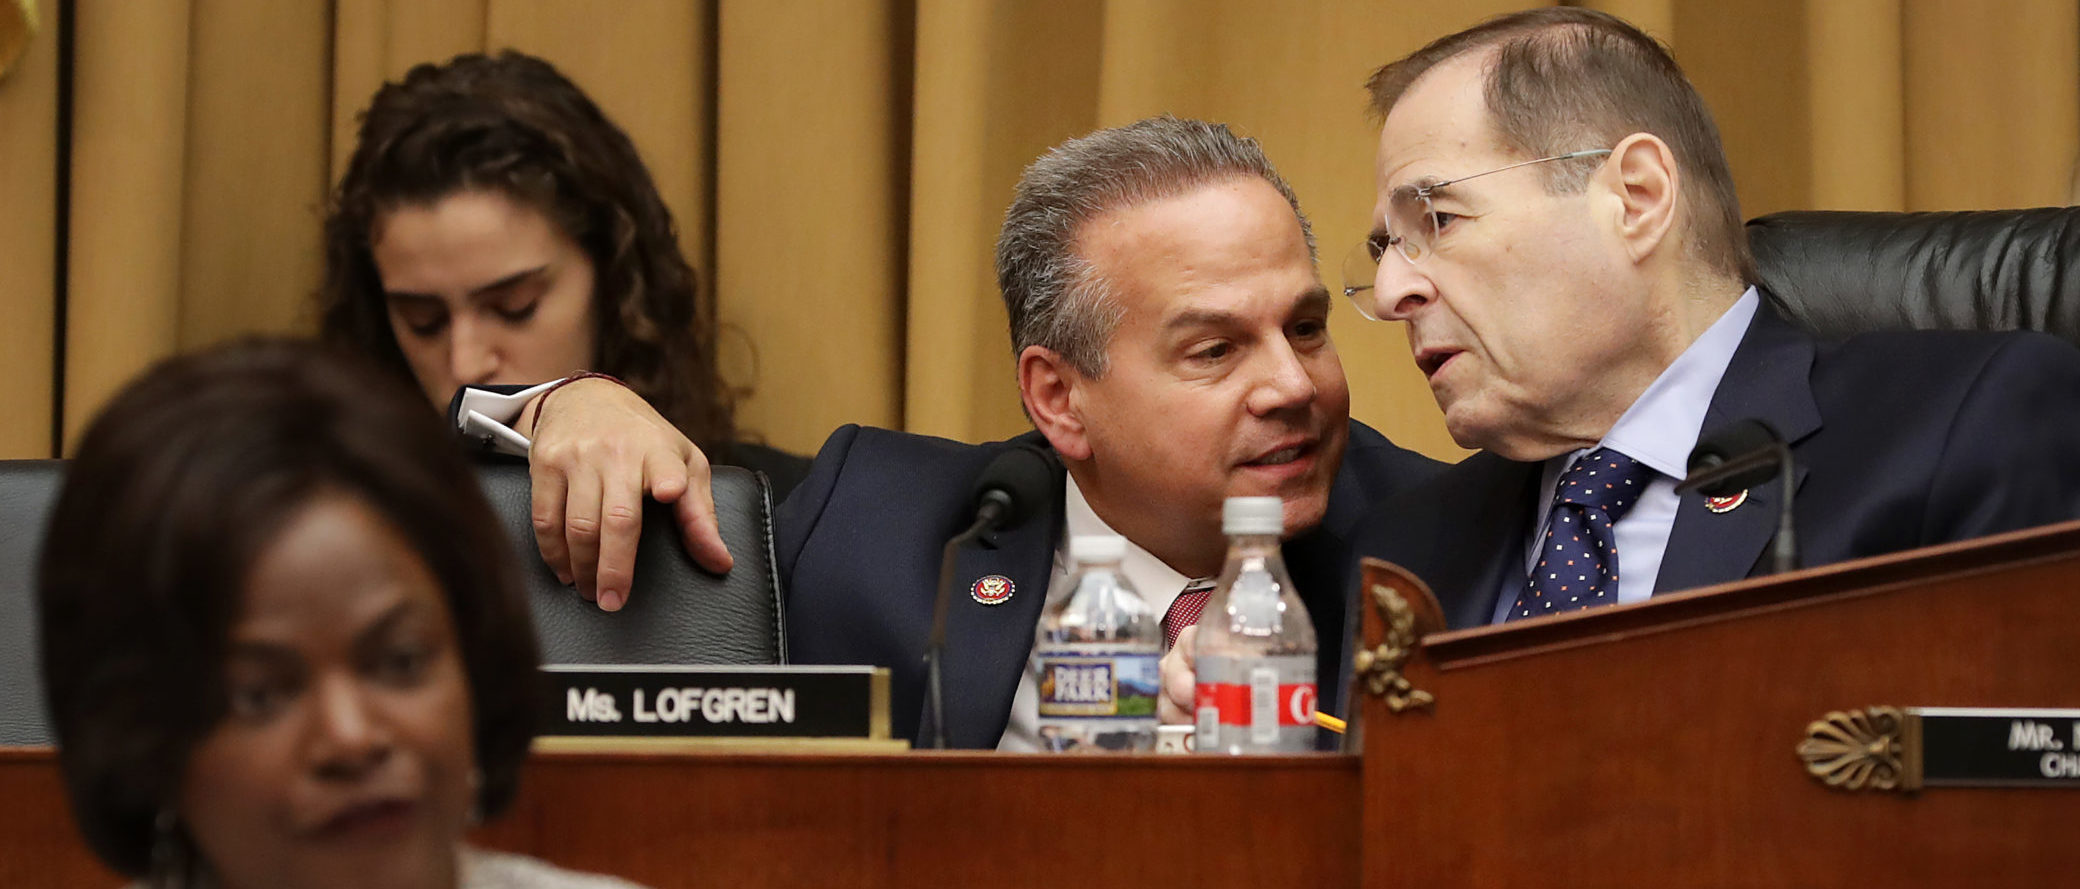 House Judiciary Committee member Rep. David Cicilline talks with Chairman Jerry Nadler during a hearing on Feb. 8, 2019. (Chip Somodevilla/Getty Images)